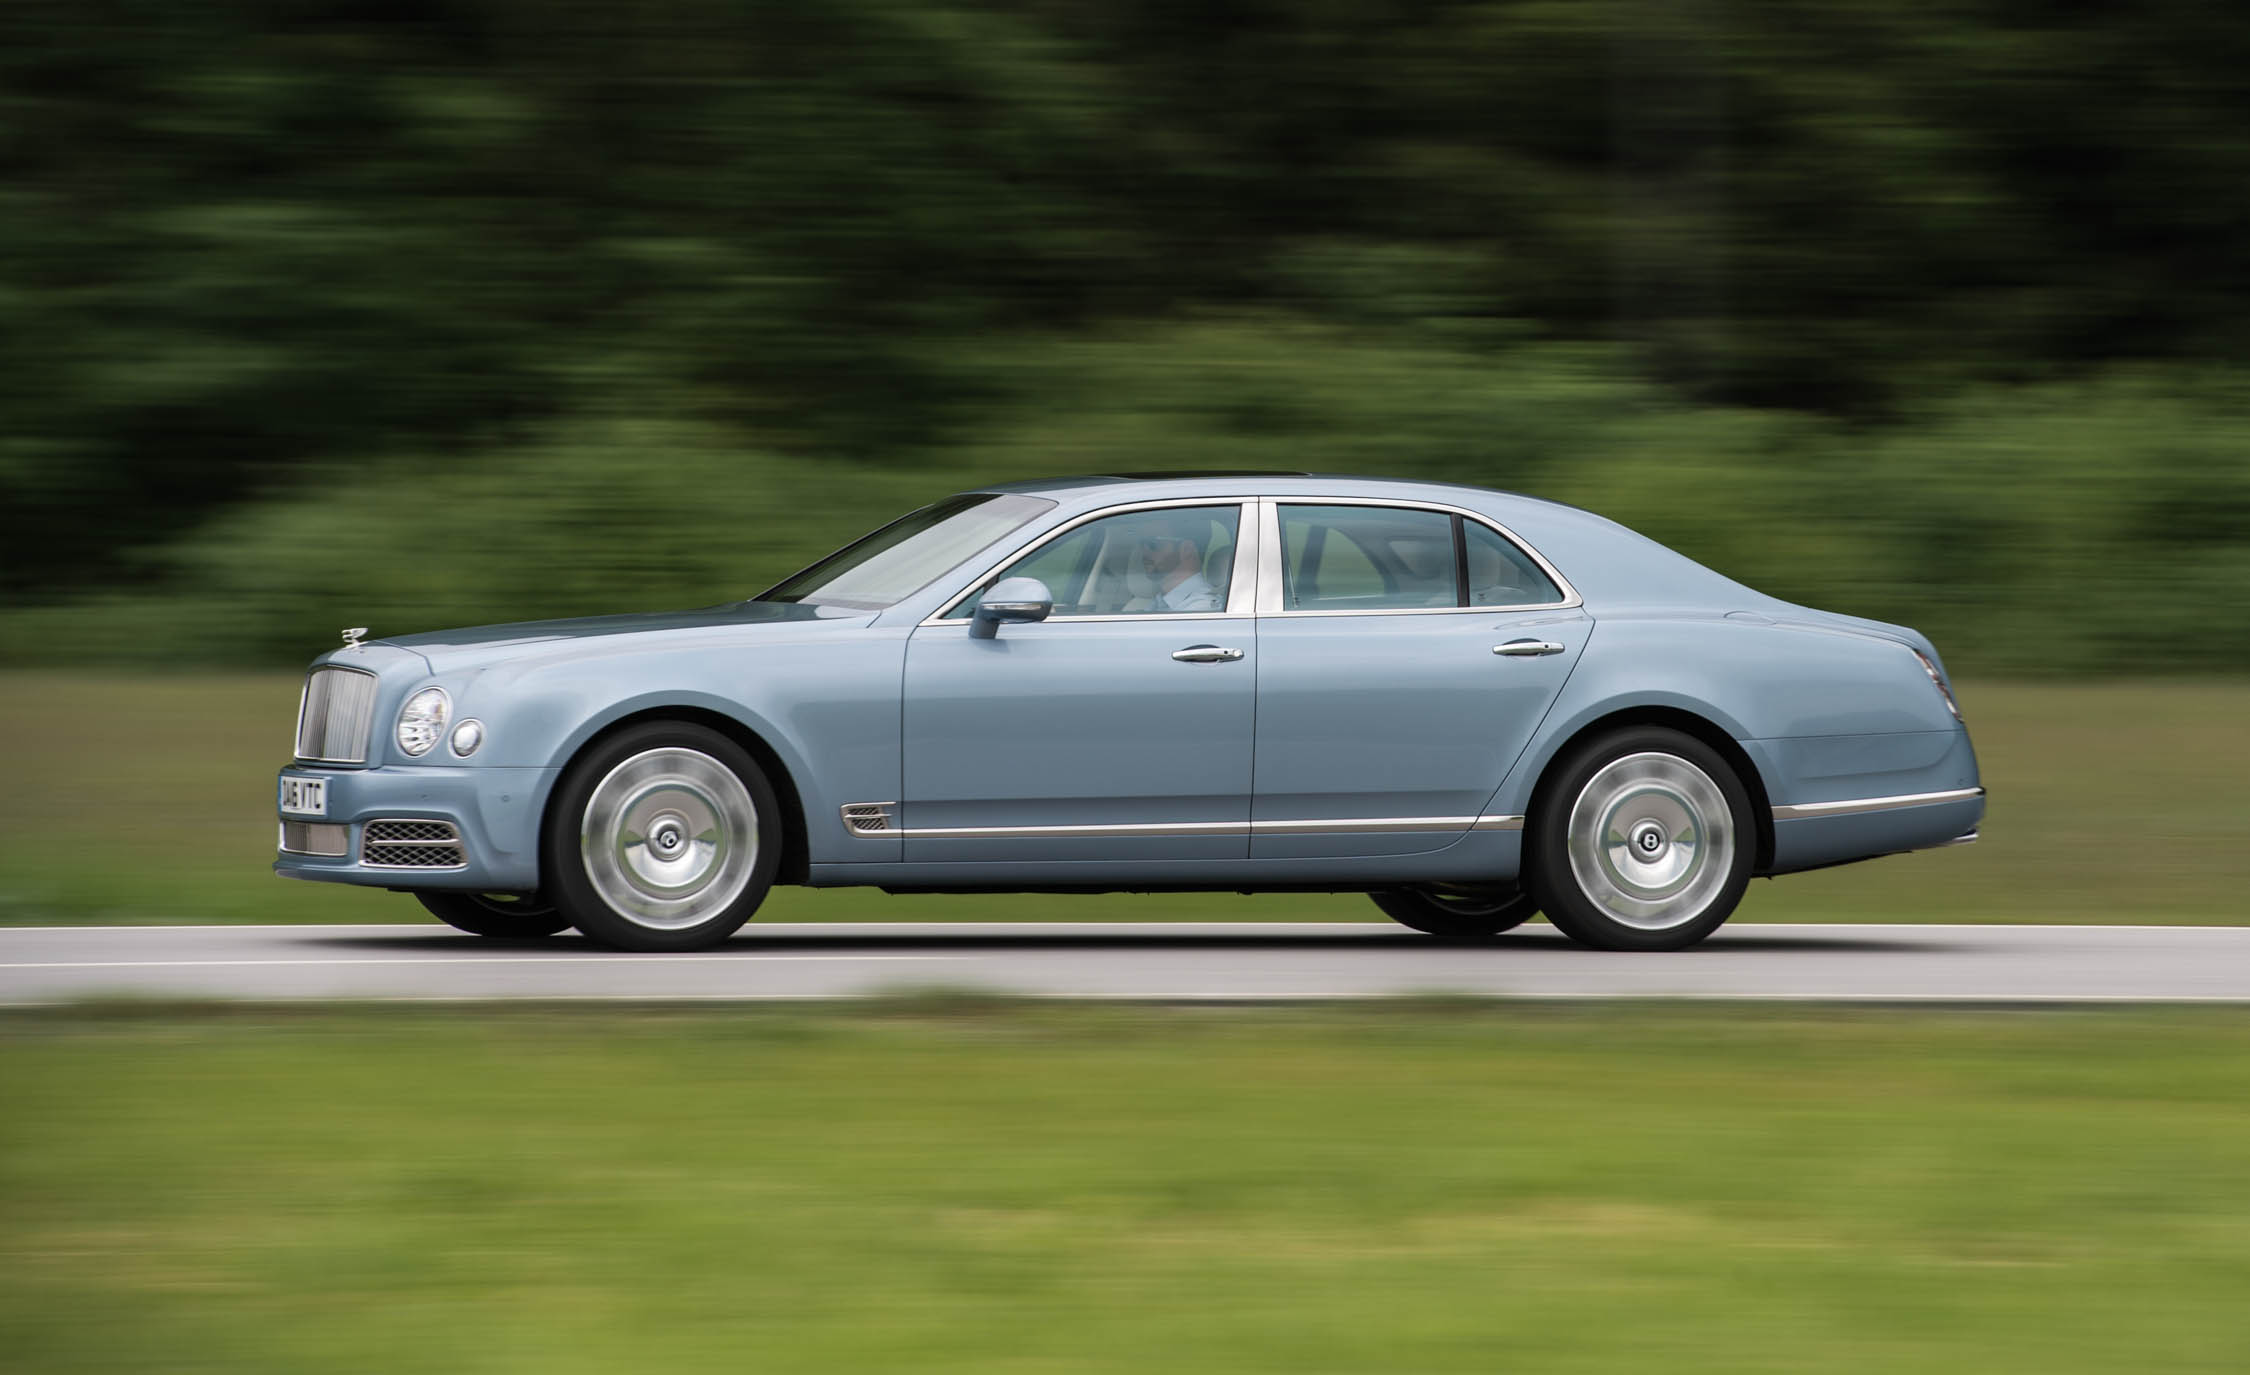 2017 Bentley Mulsanne (View 5 of 37)